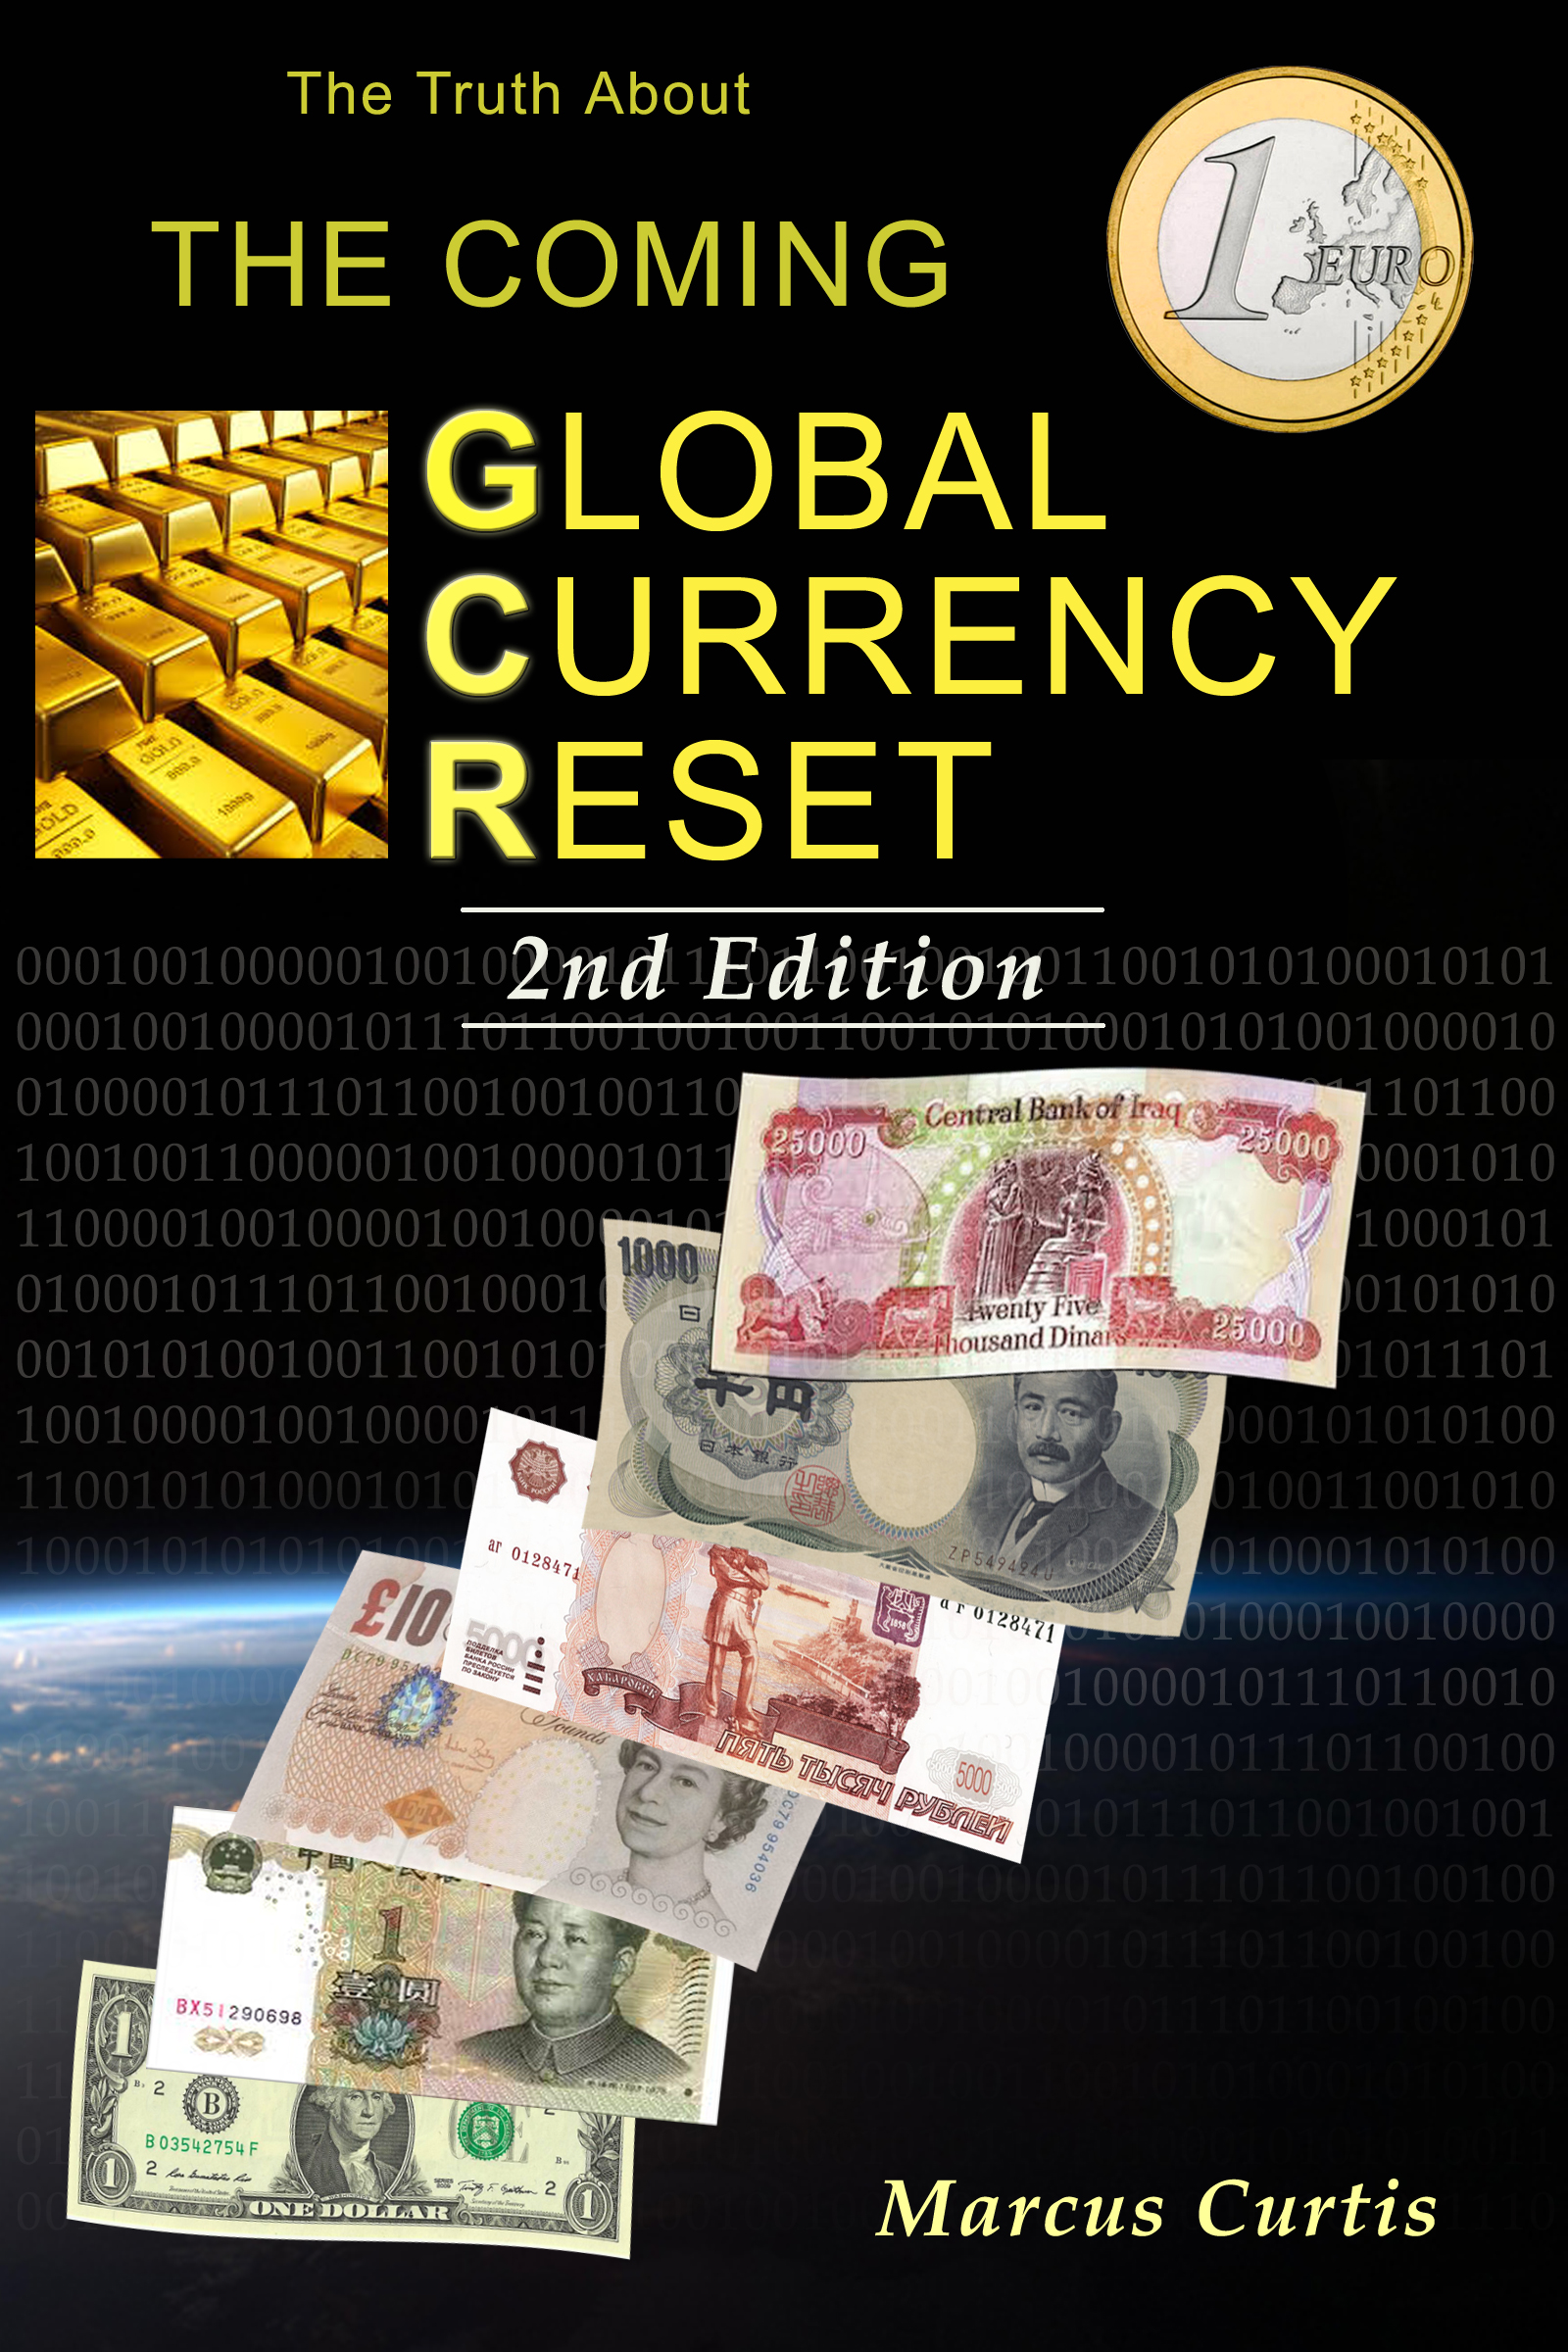 What Is The Global Currency Reset - The Truth About The Coming